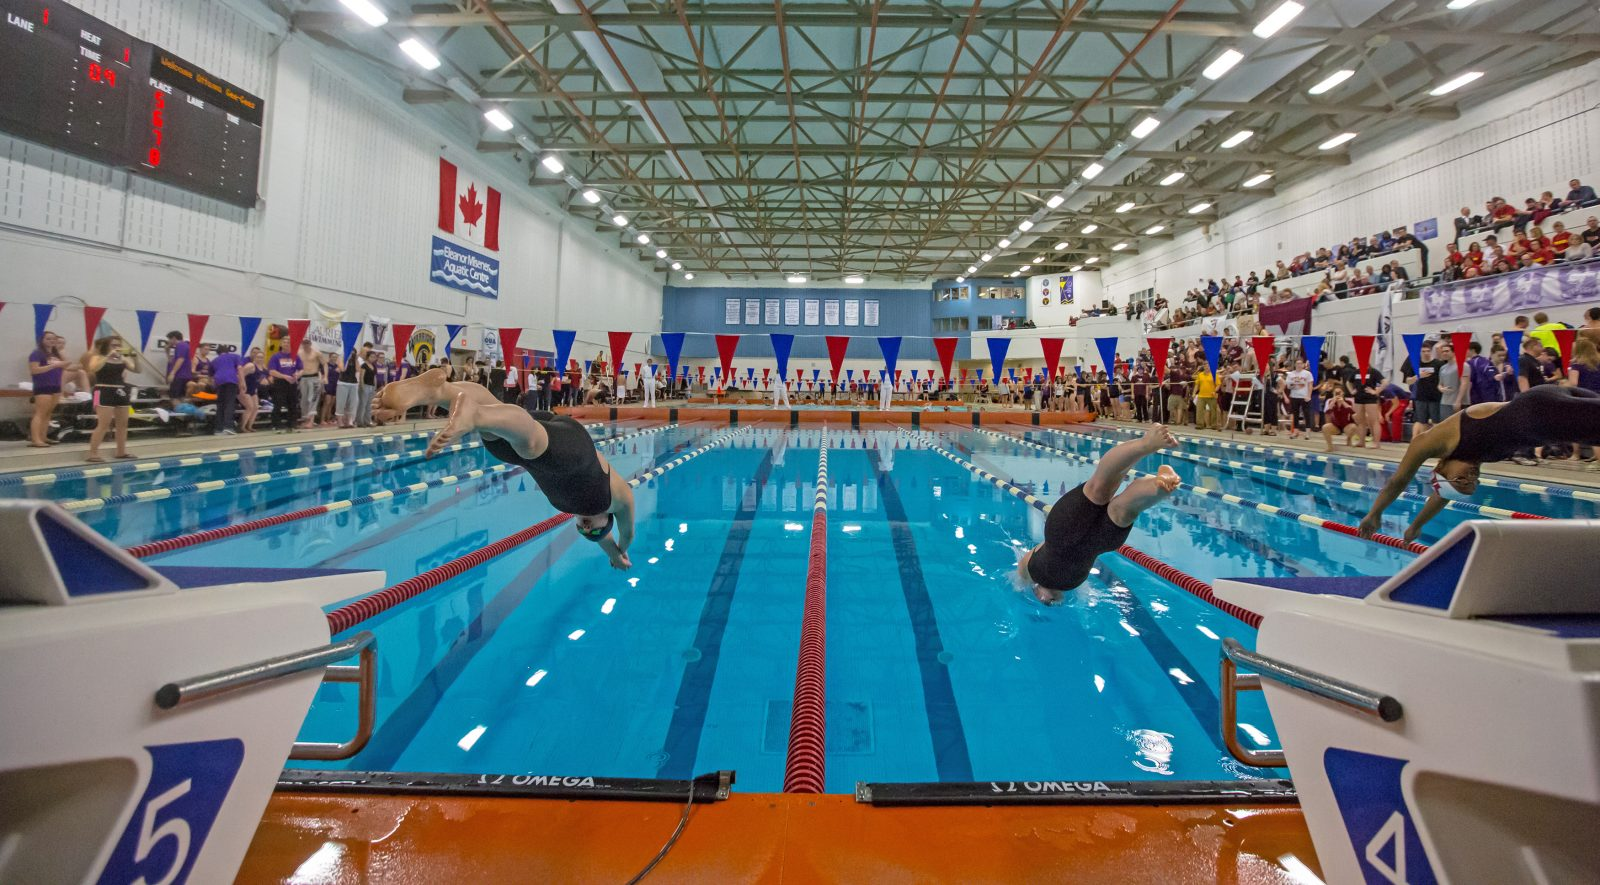 Varsity Swimmers From China To Compete At Brock The Brock News